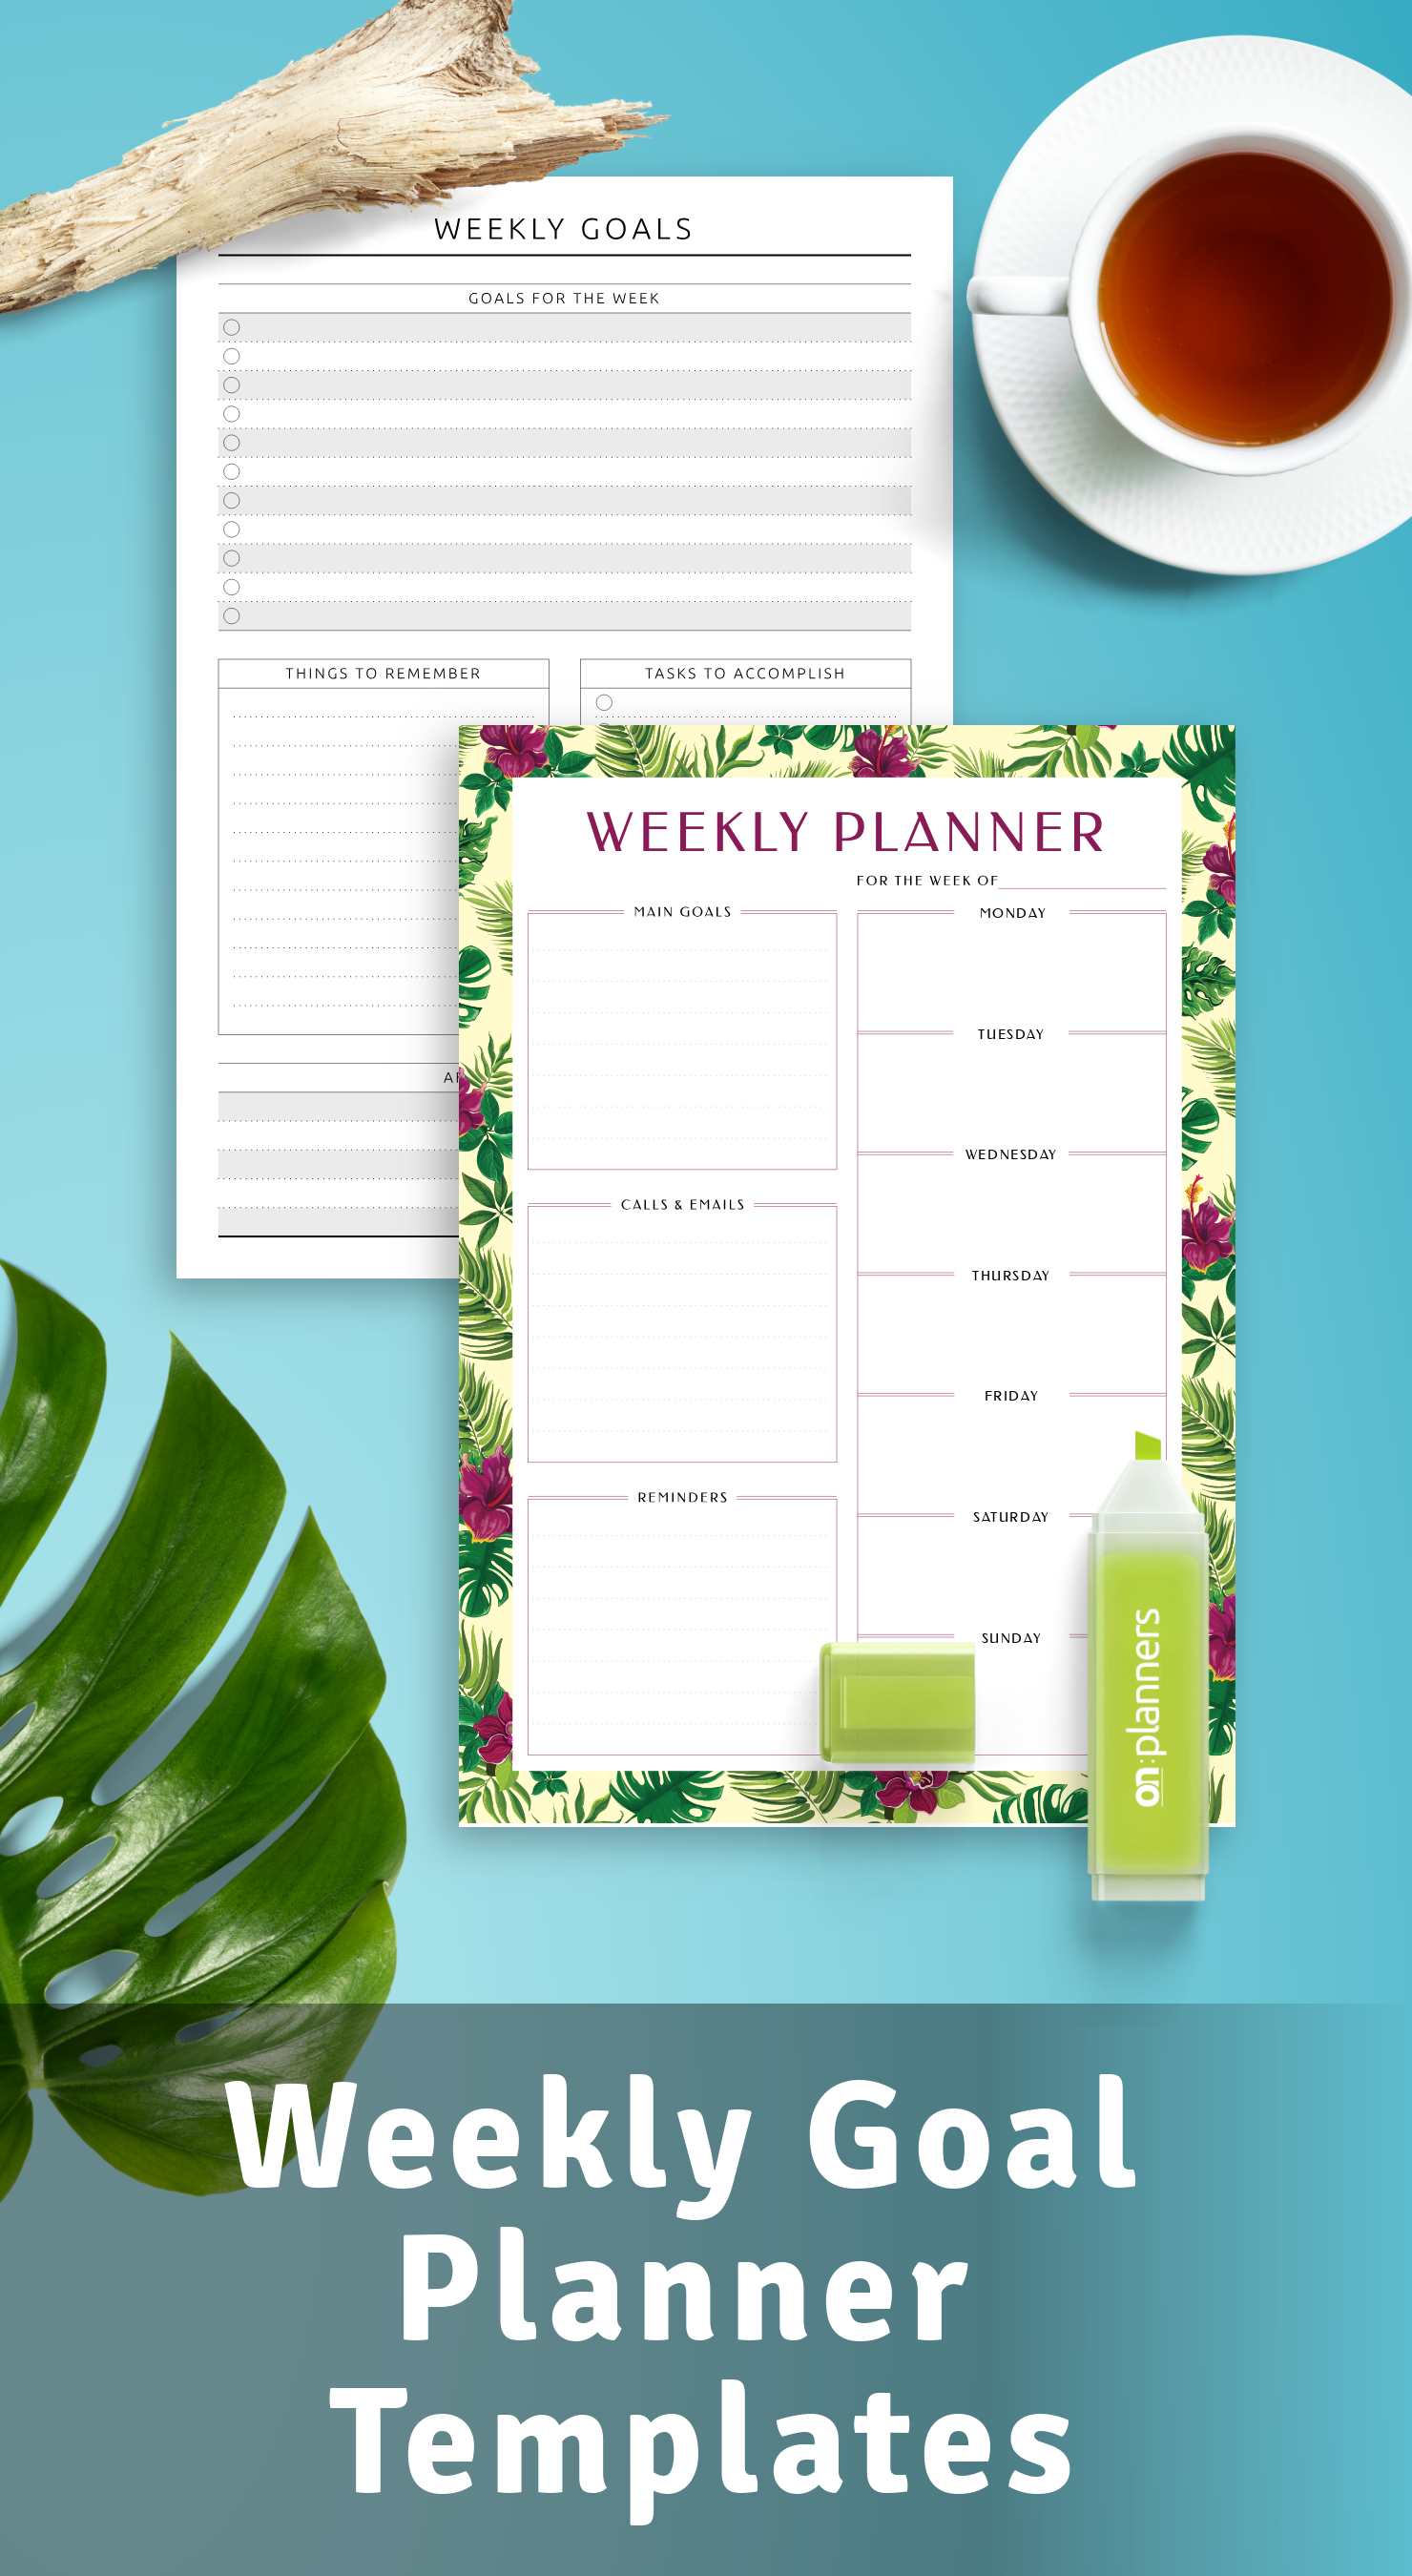 Download Weekly Goal Planner Templates